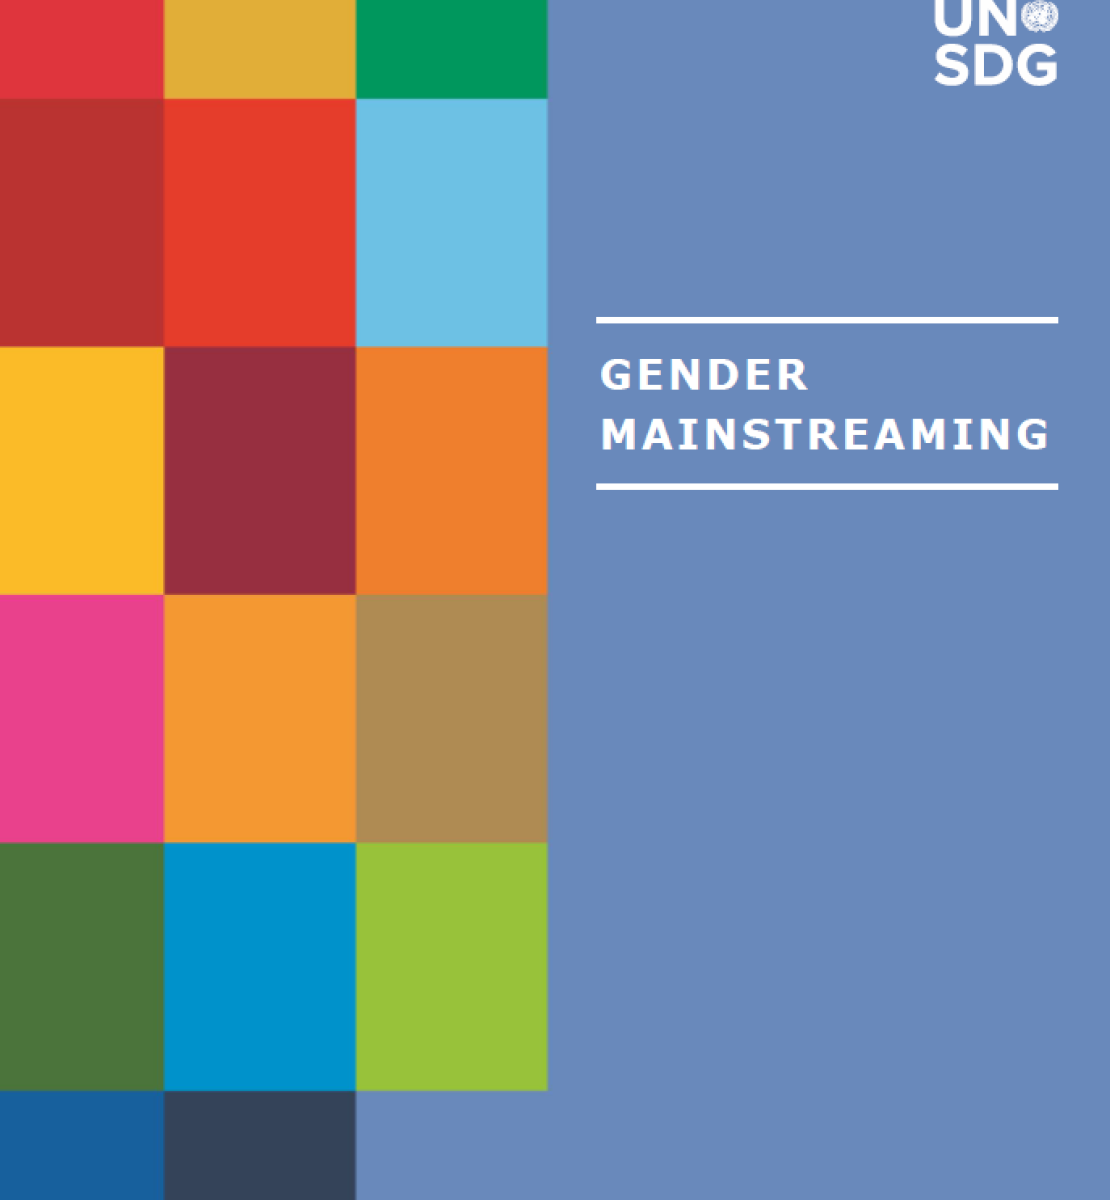 Cover to the Gender Mainstreaming Resource